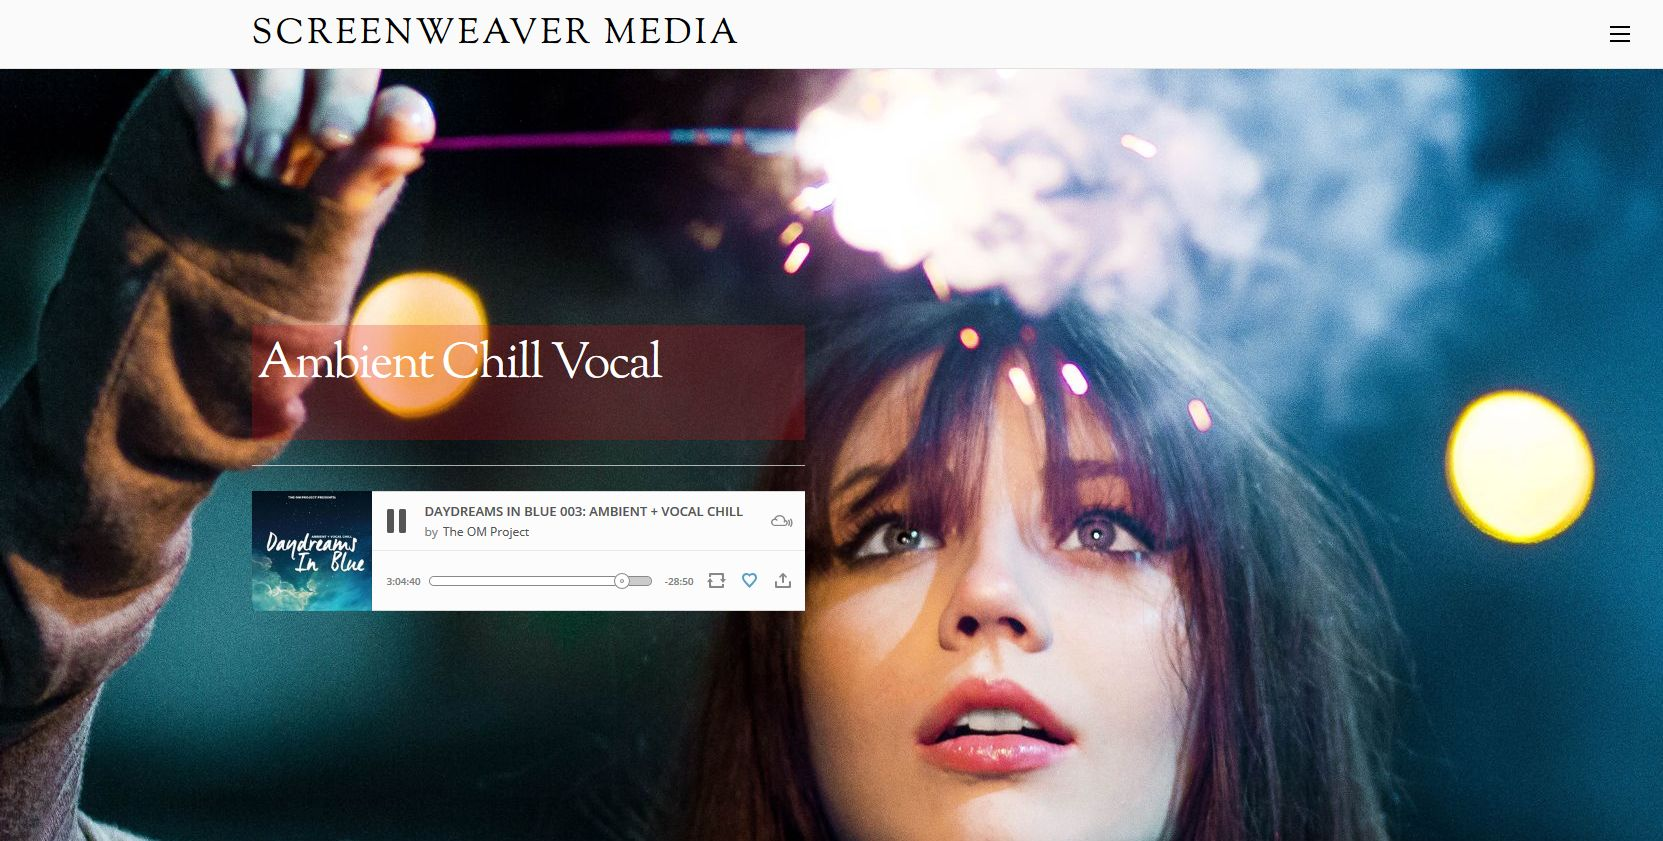 Ambient_Vocals_screenweaver_media_2017